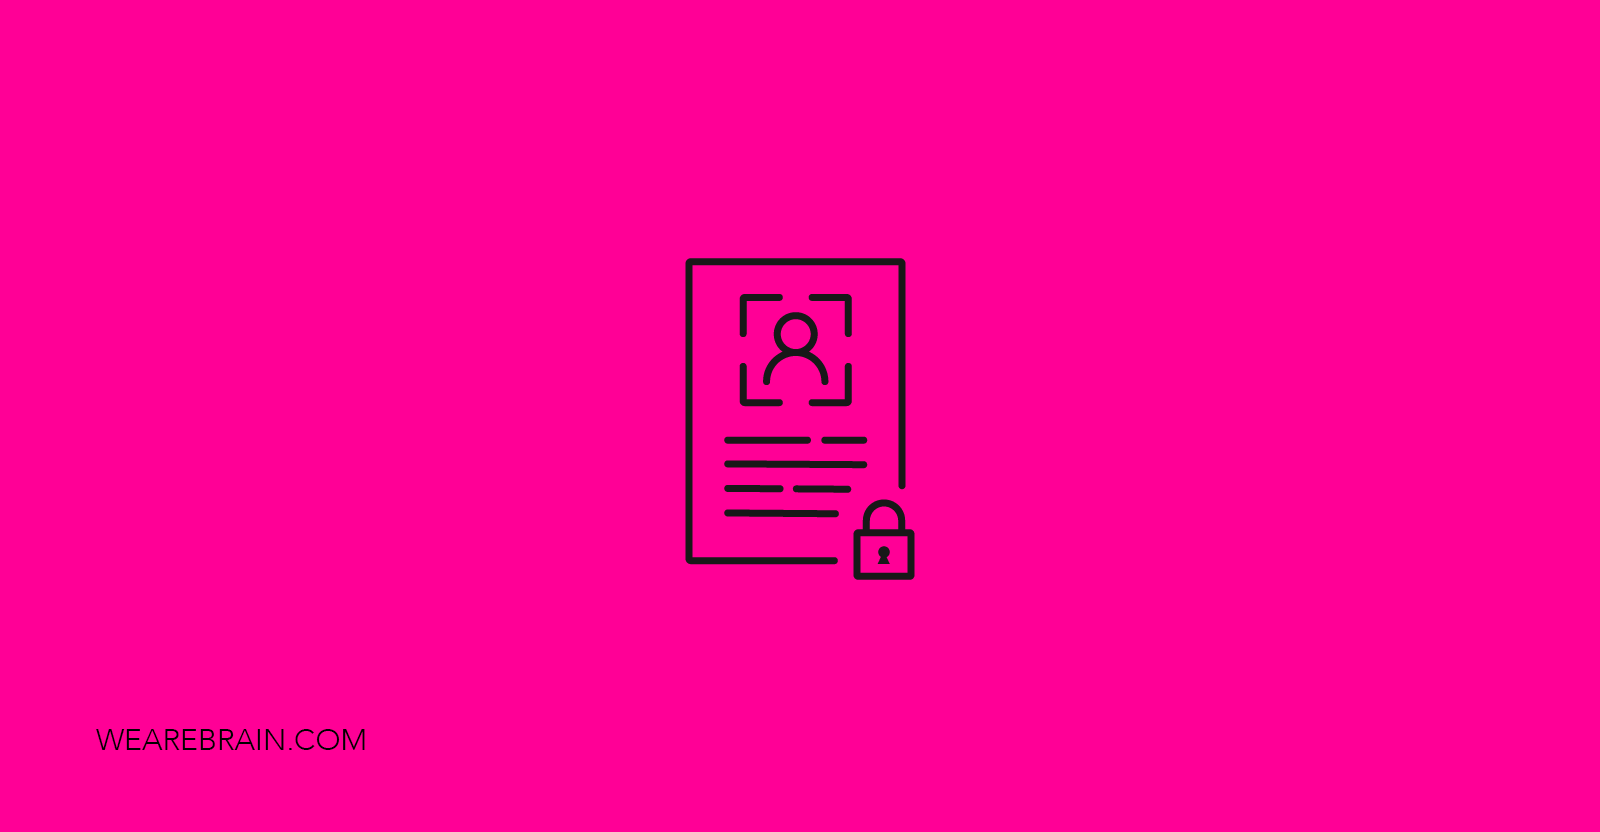 icon of an encrypted document